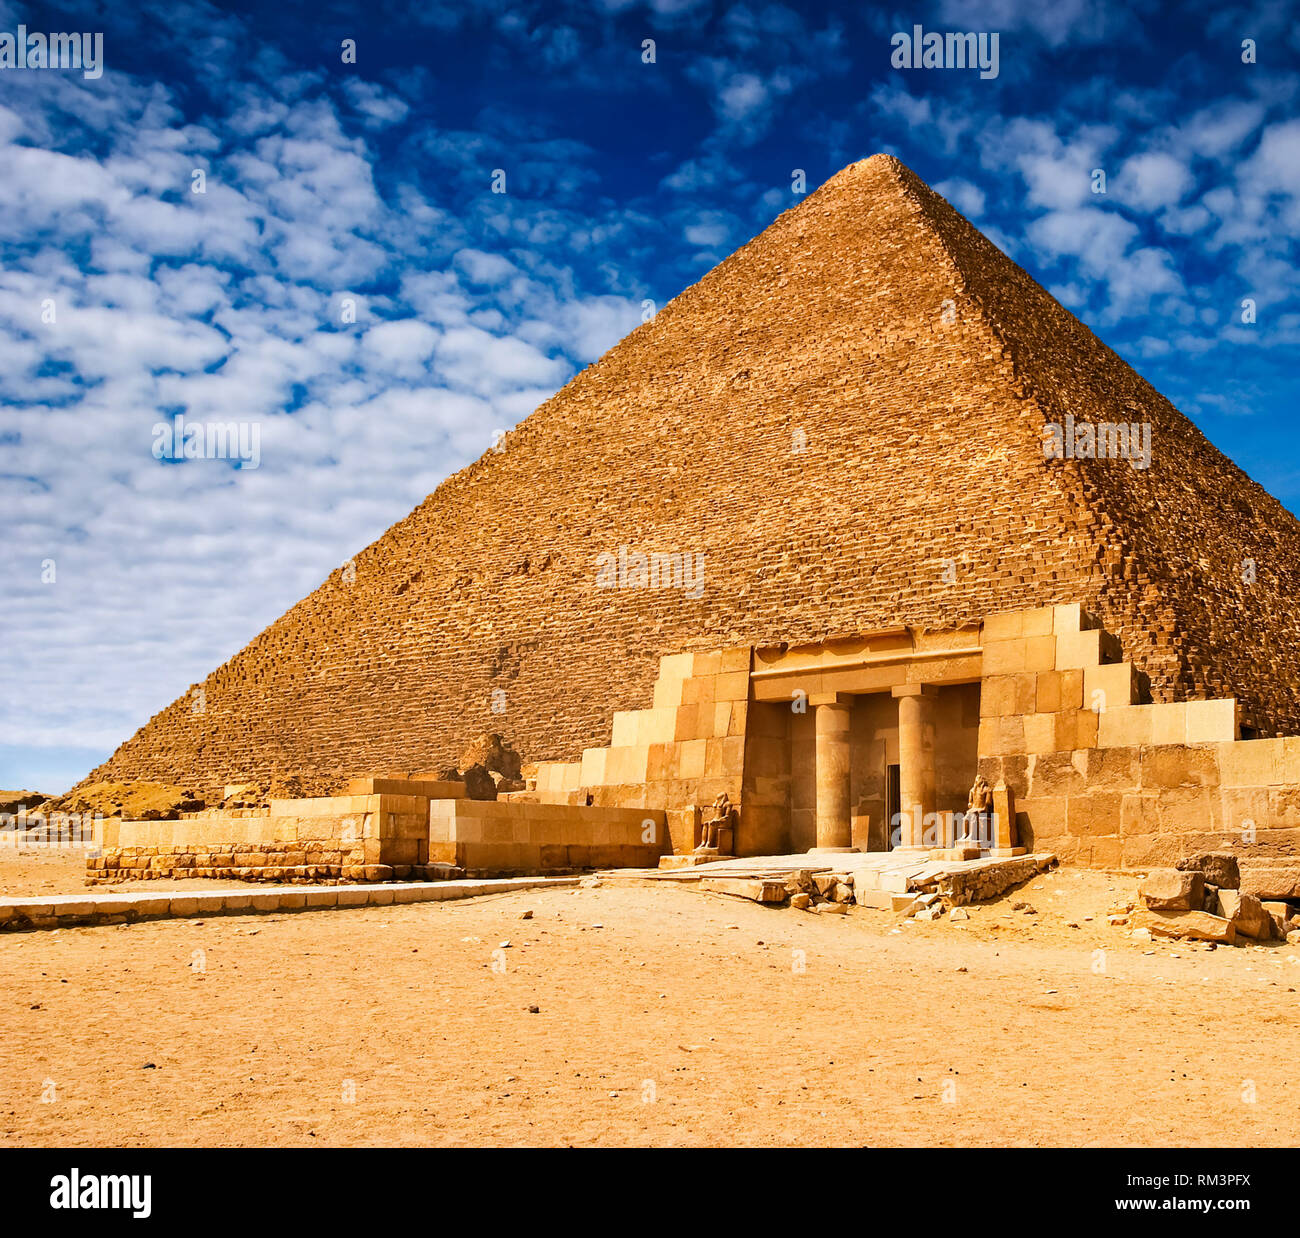 Egyptian Pyramid In Giza Architectural Heritage Of